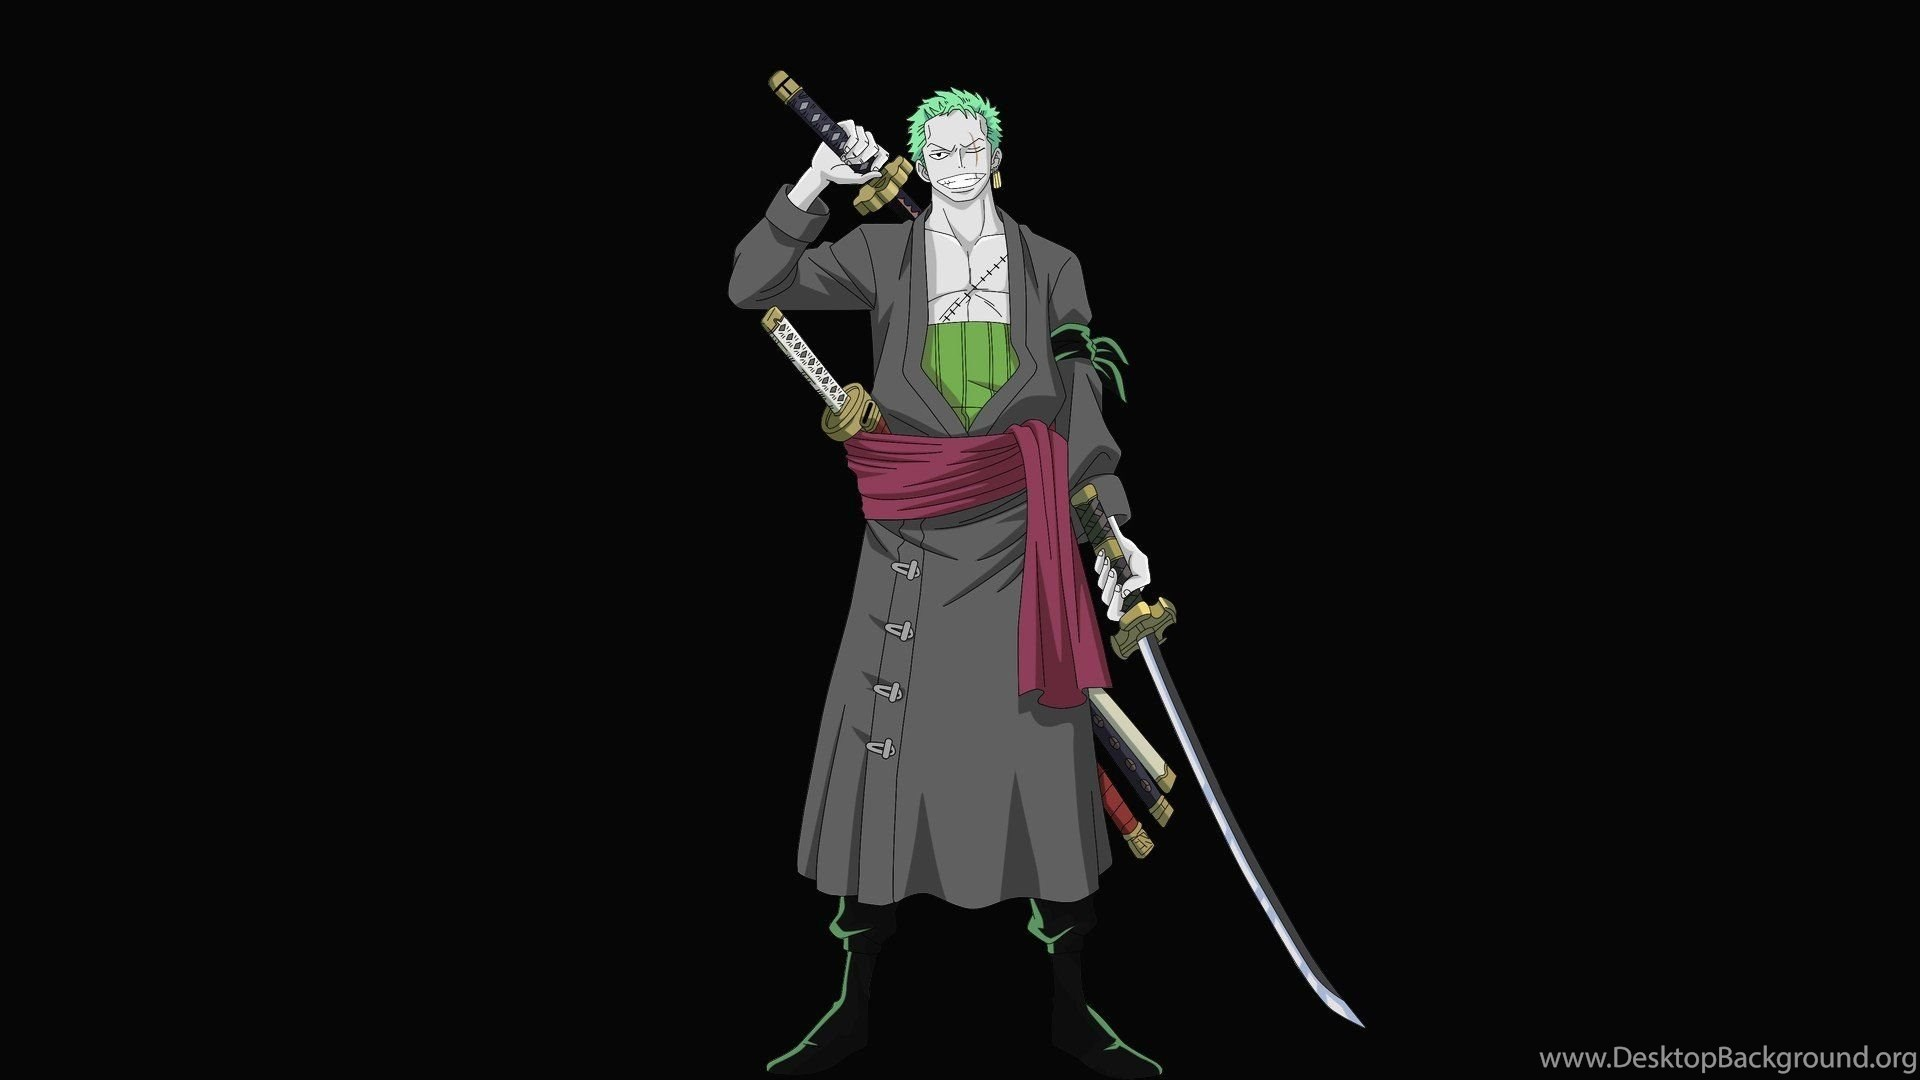 One Piece Anime Roronoa Zoro Green Hair Anime Anime Boys Swords Desktop Background